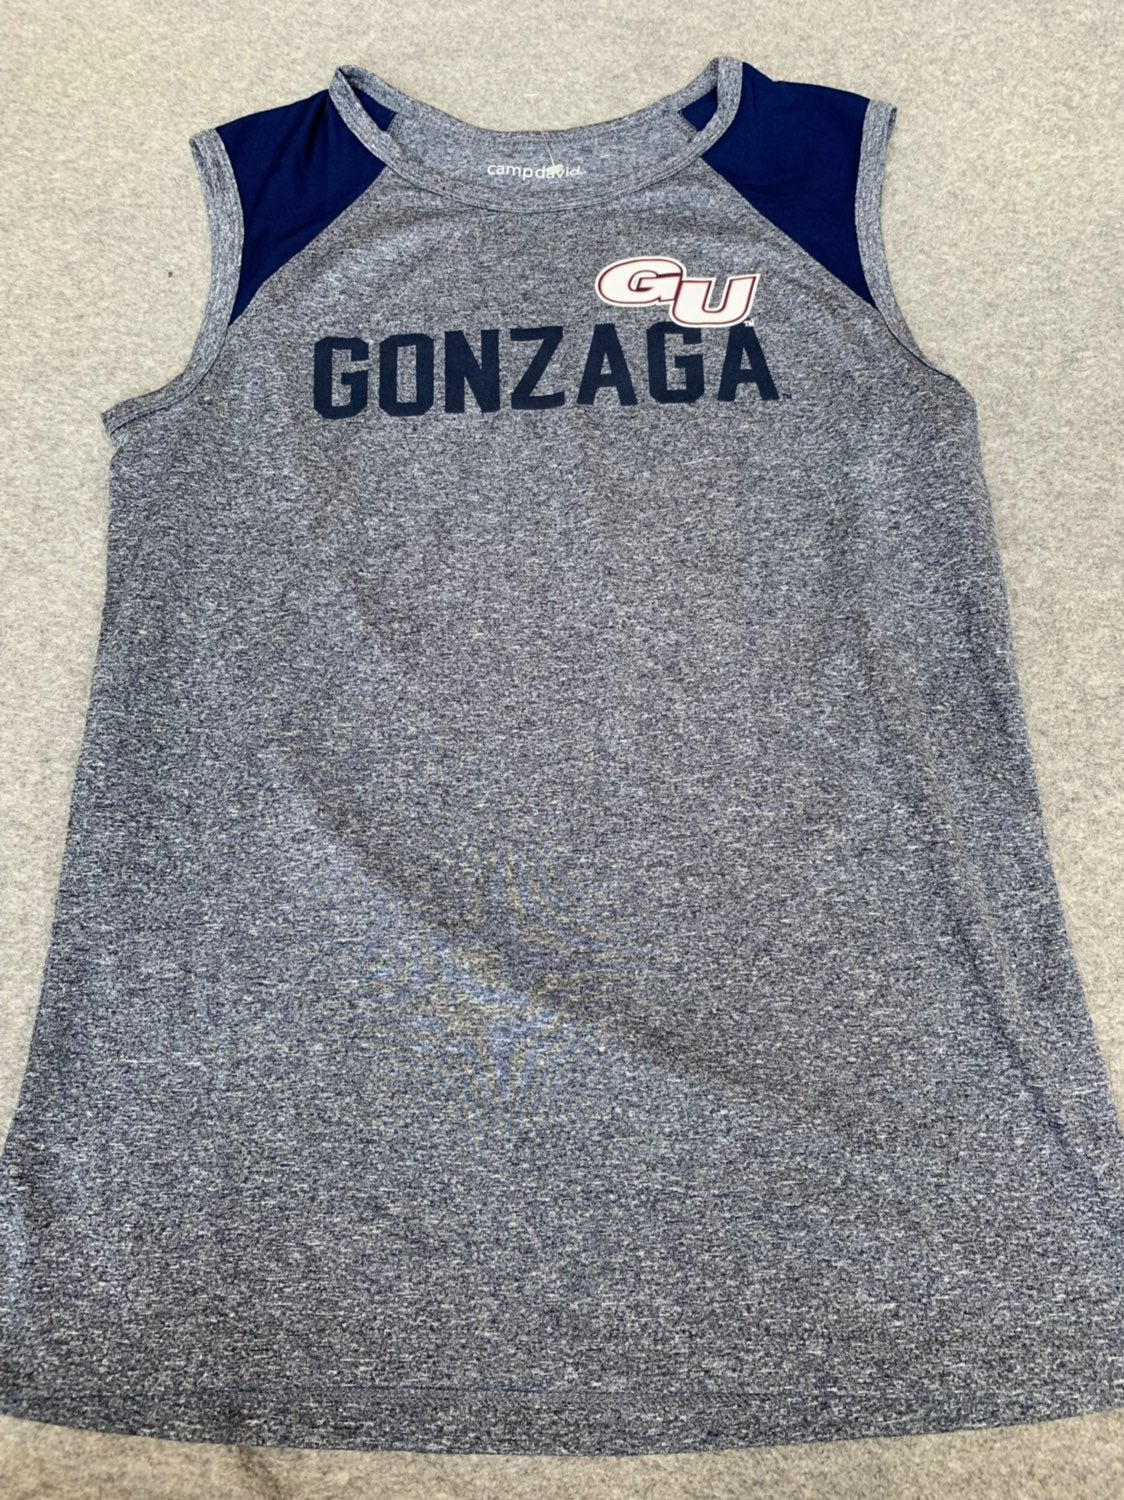 Men's Medium Gonzaga Bulldogs Workout Tank